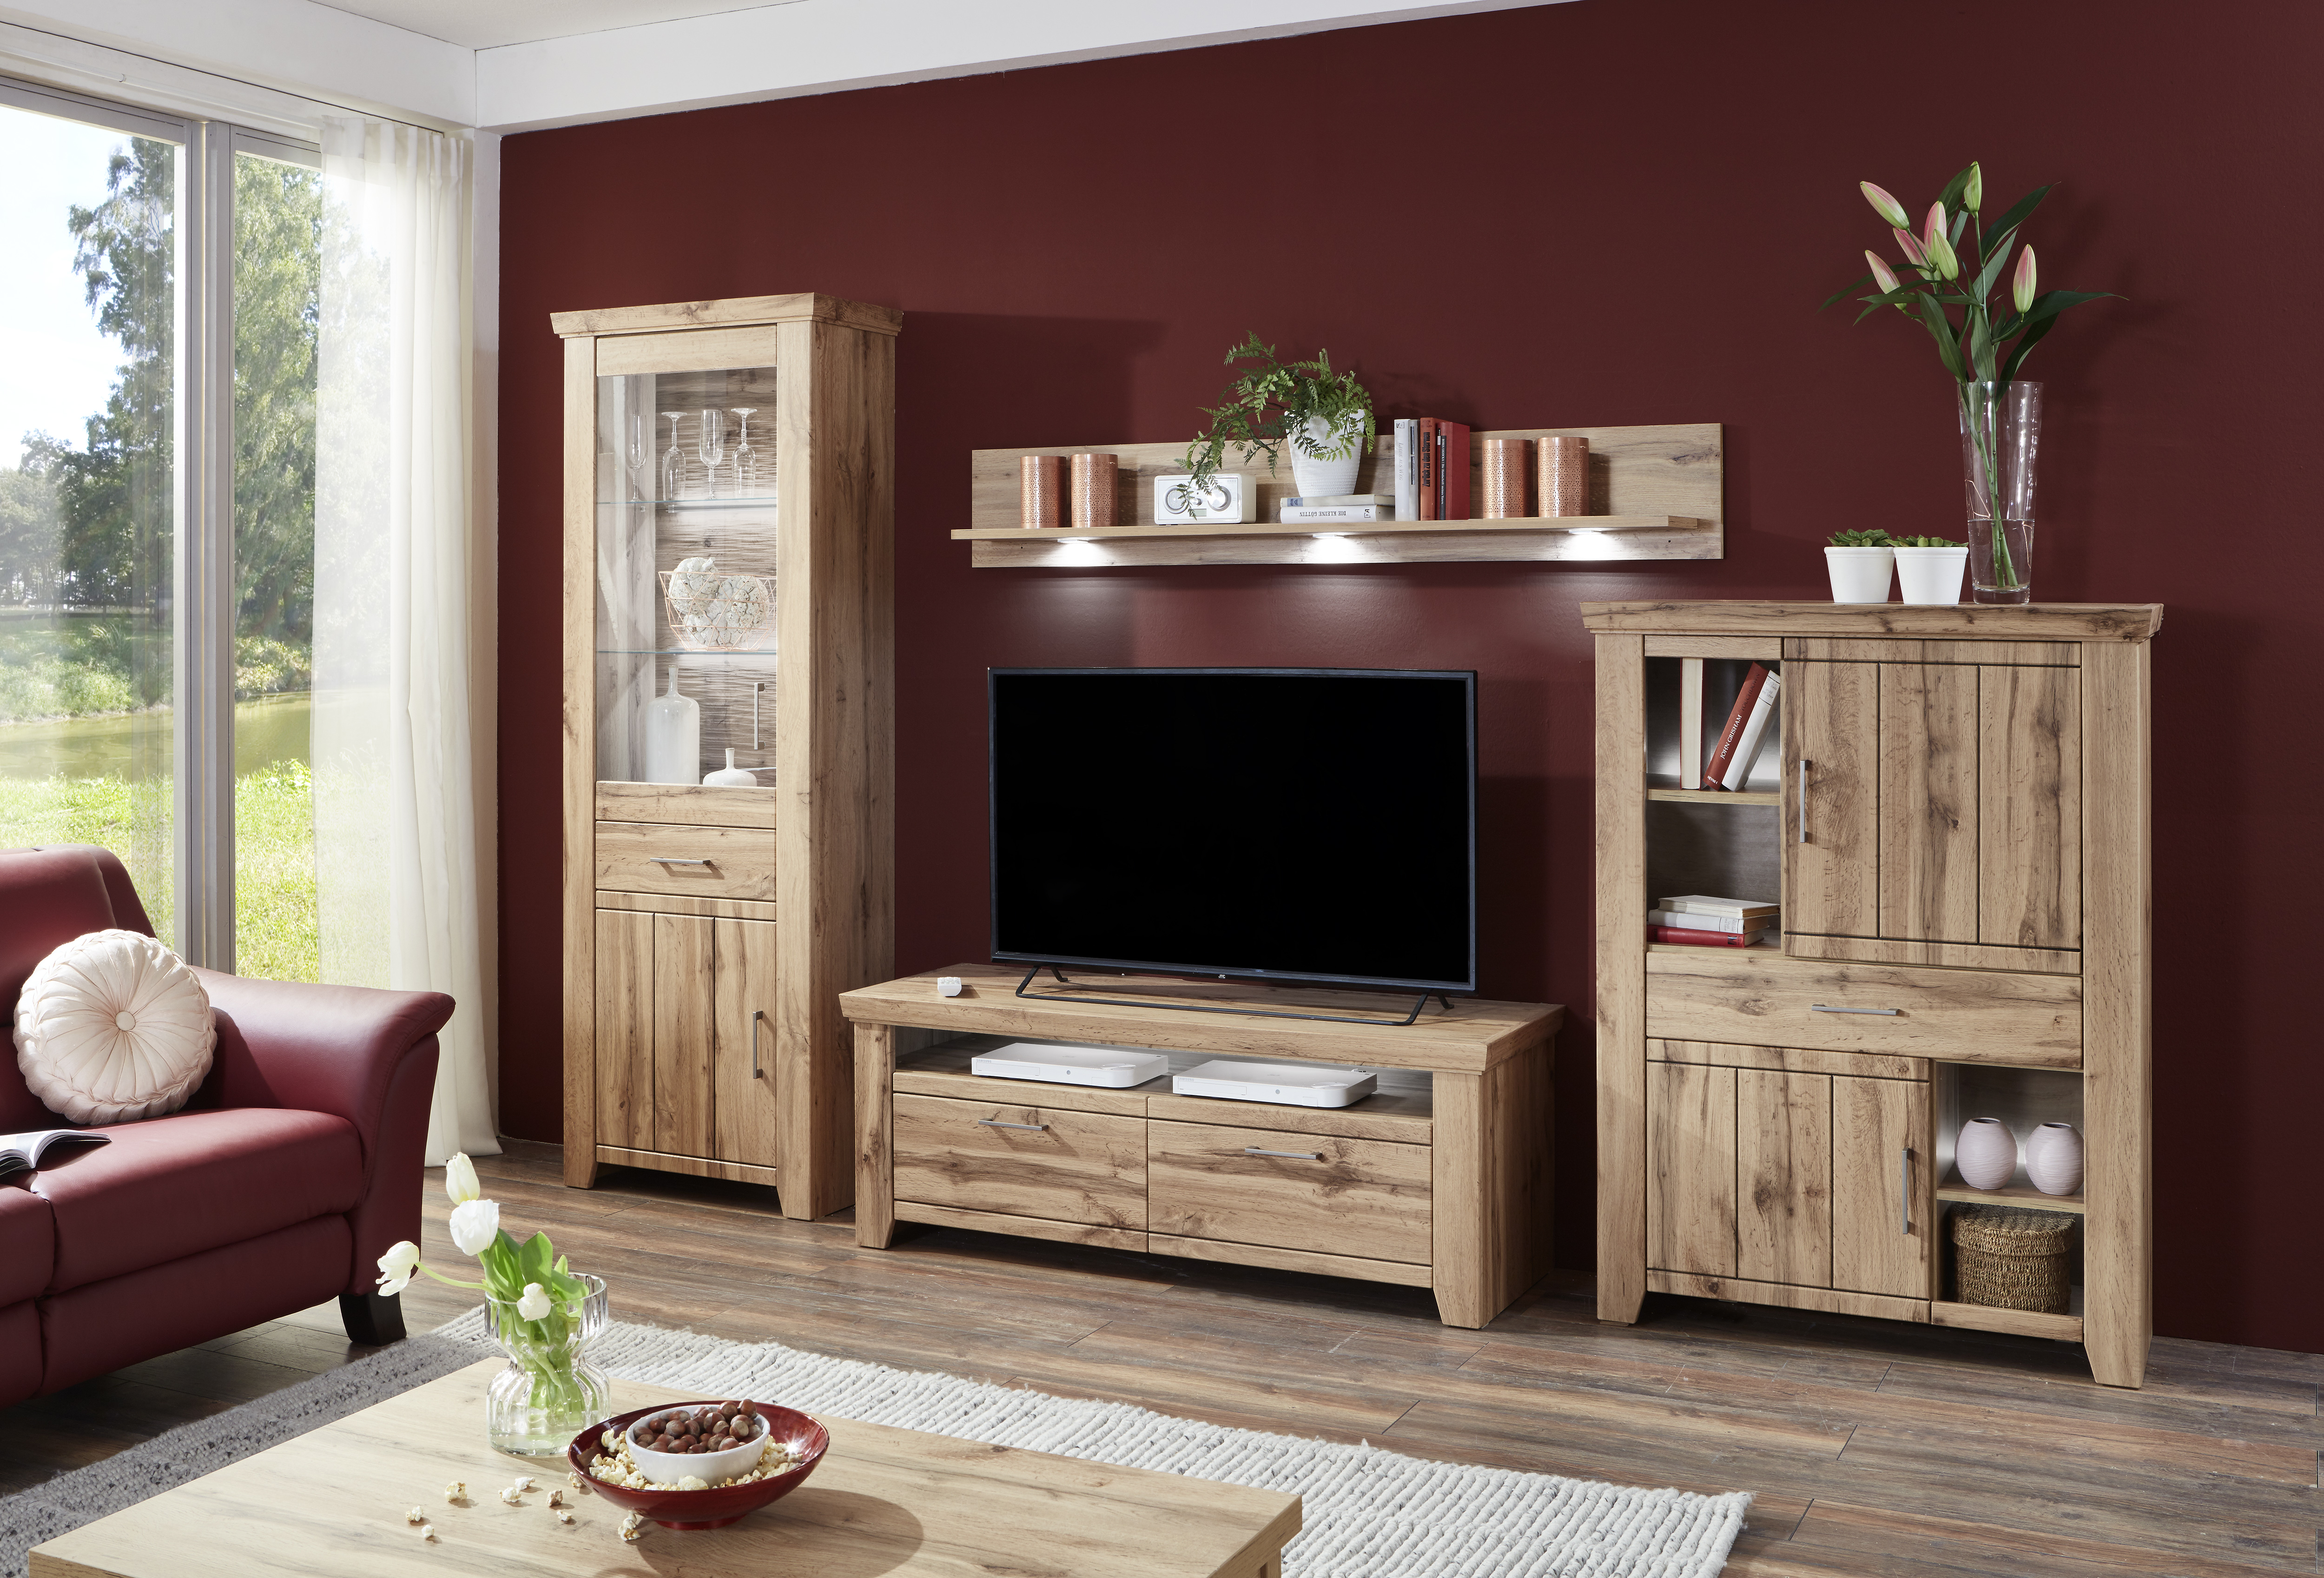 wohnwand ohne tv teil latest wohnwand salsa design mediawand modernes wohnzimmer set anbauwand. Black Bedroom Furniture Sets. Home Design Ideas